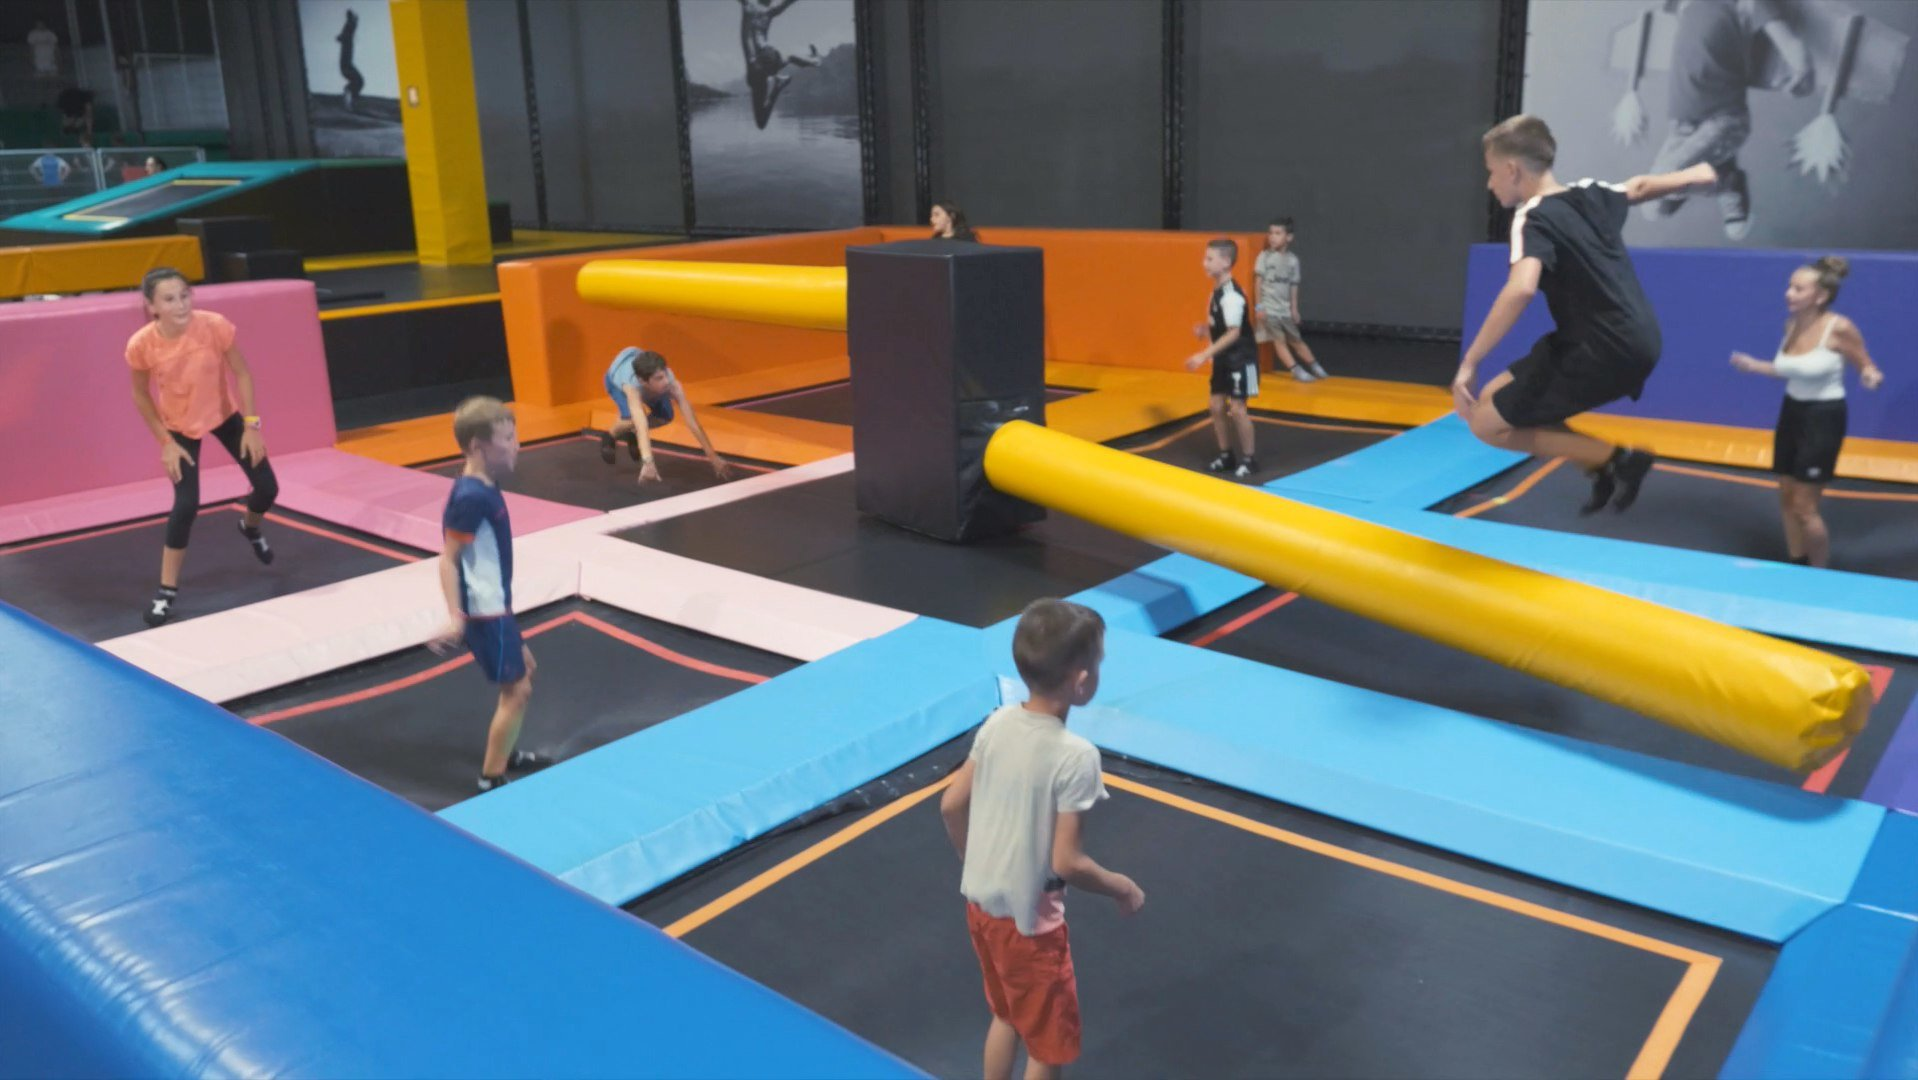 Le tiwister jump chez you Jump